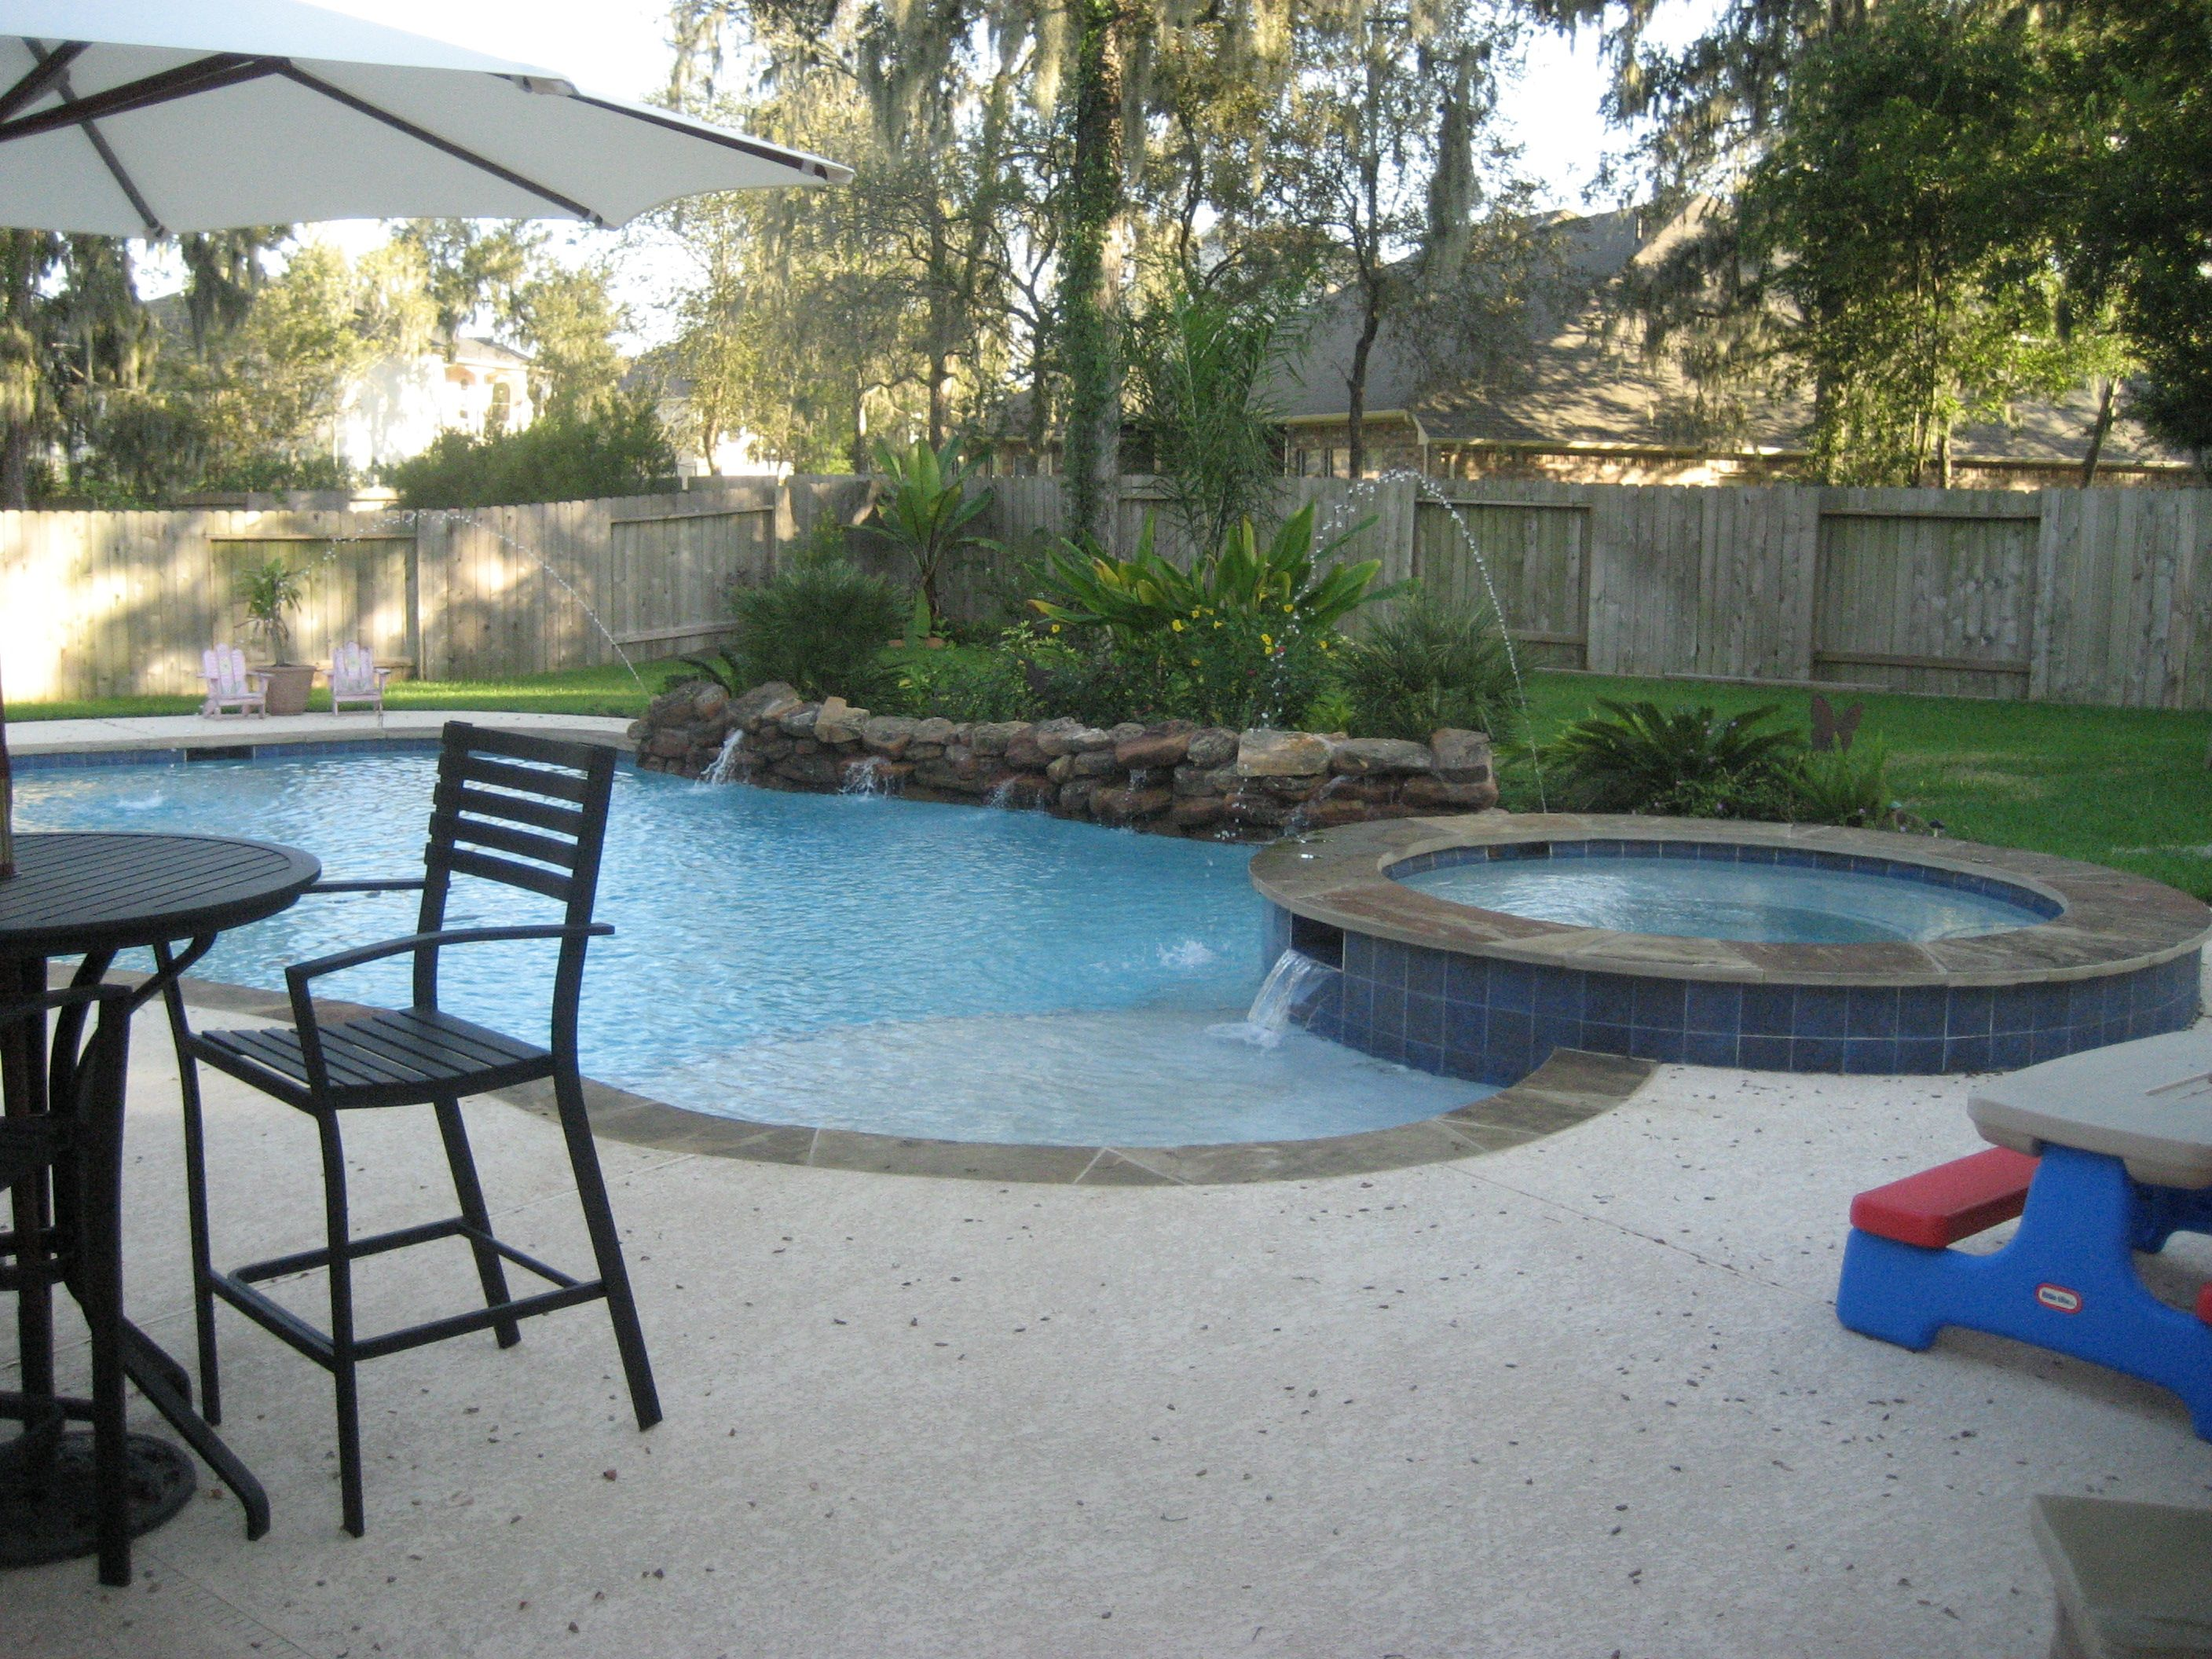 Small back yard pools with spas tubs and pools free for Swimming pool spa designs